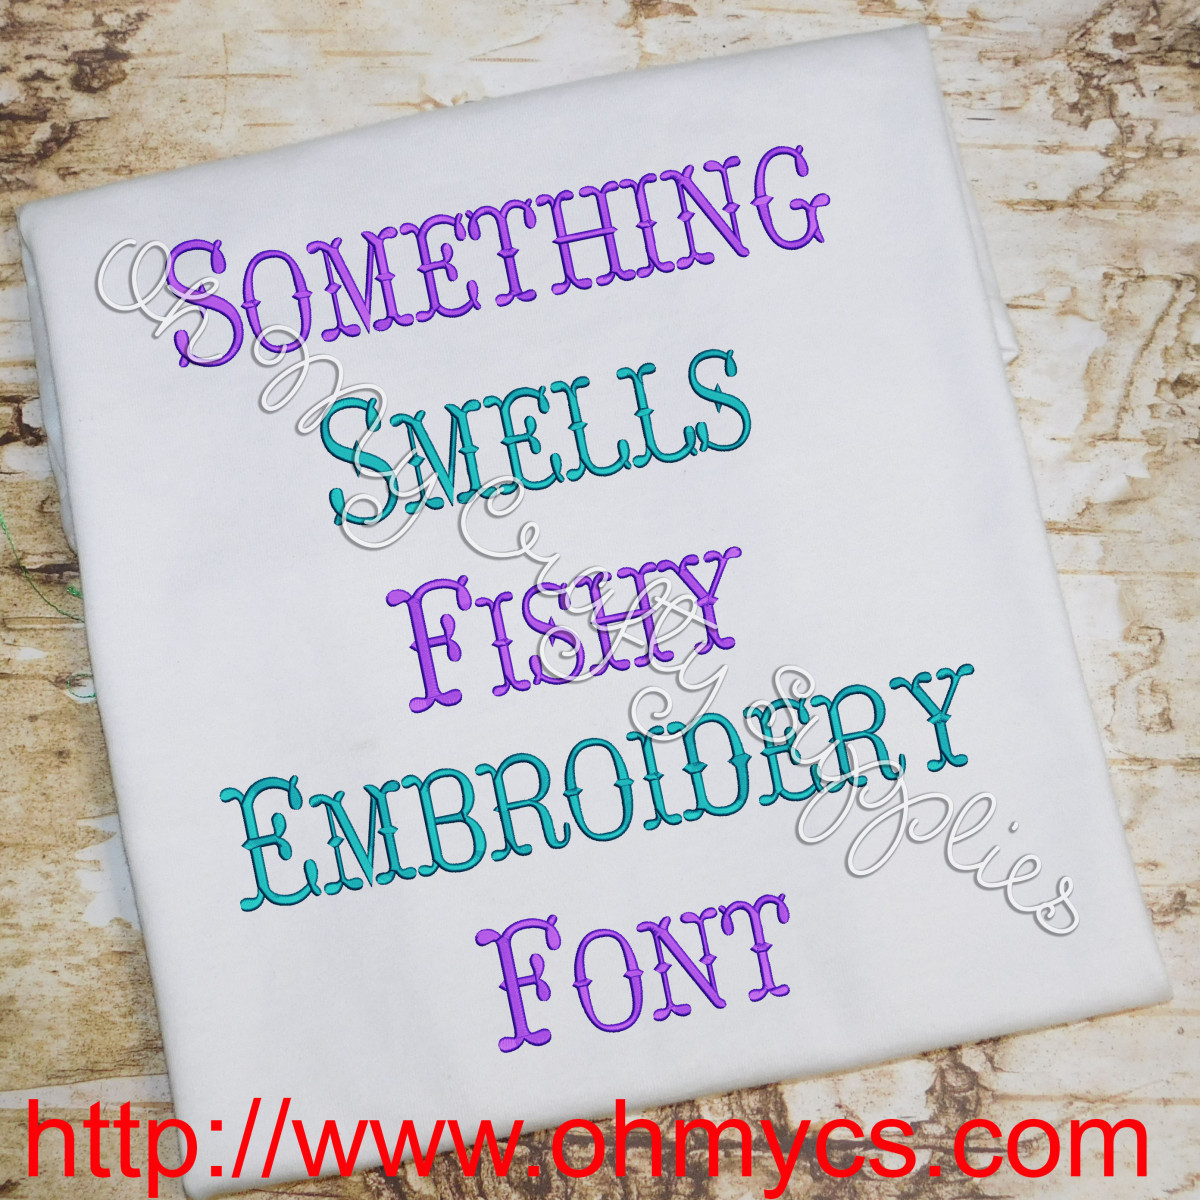 Something Smells Fishy Embroidery Font Bx Included